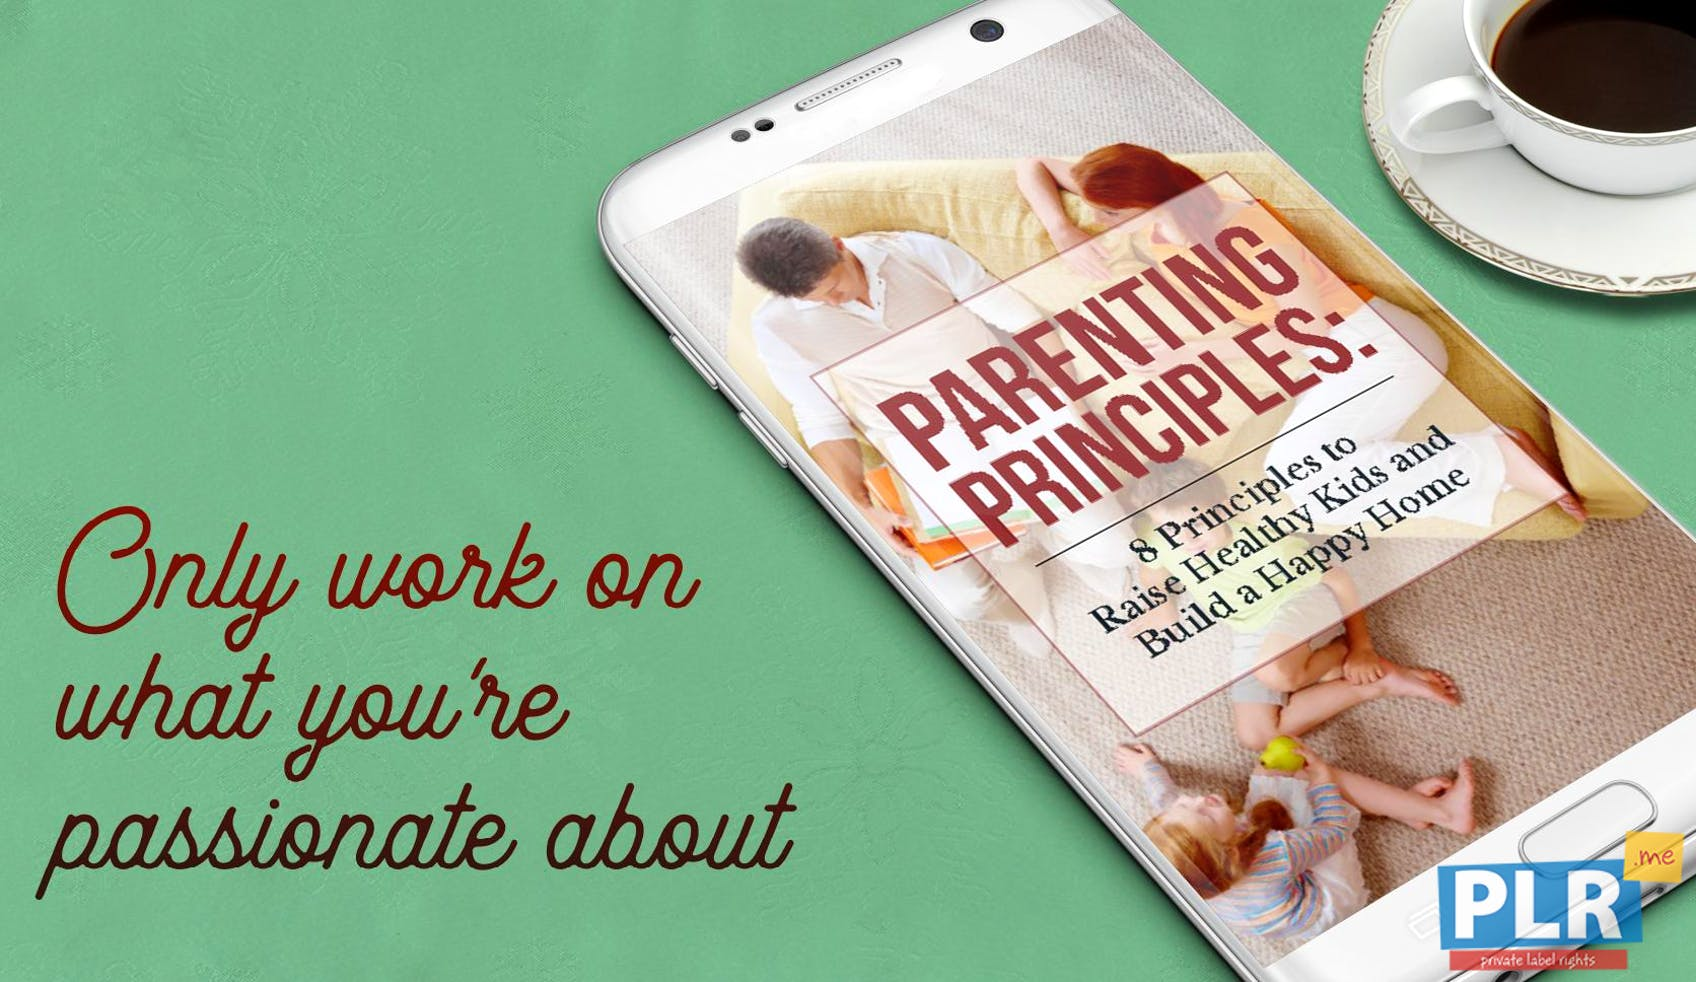 Parenting Principles 8 Principles To Raise Healthy Kids And Build A Happy Home